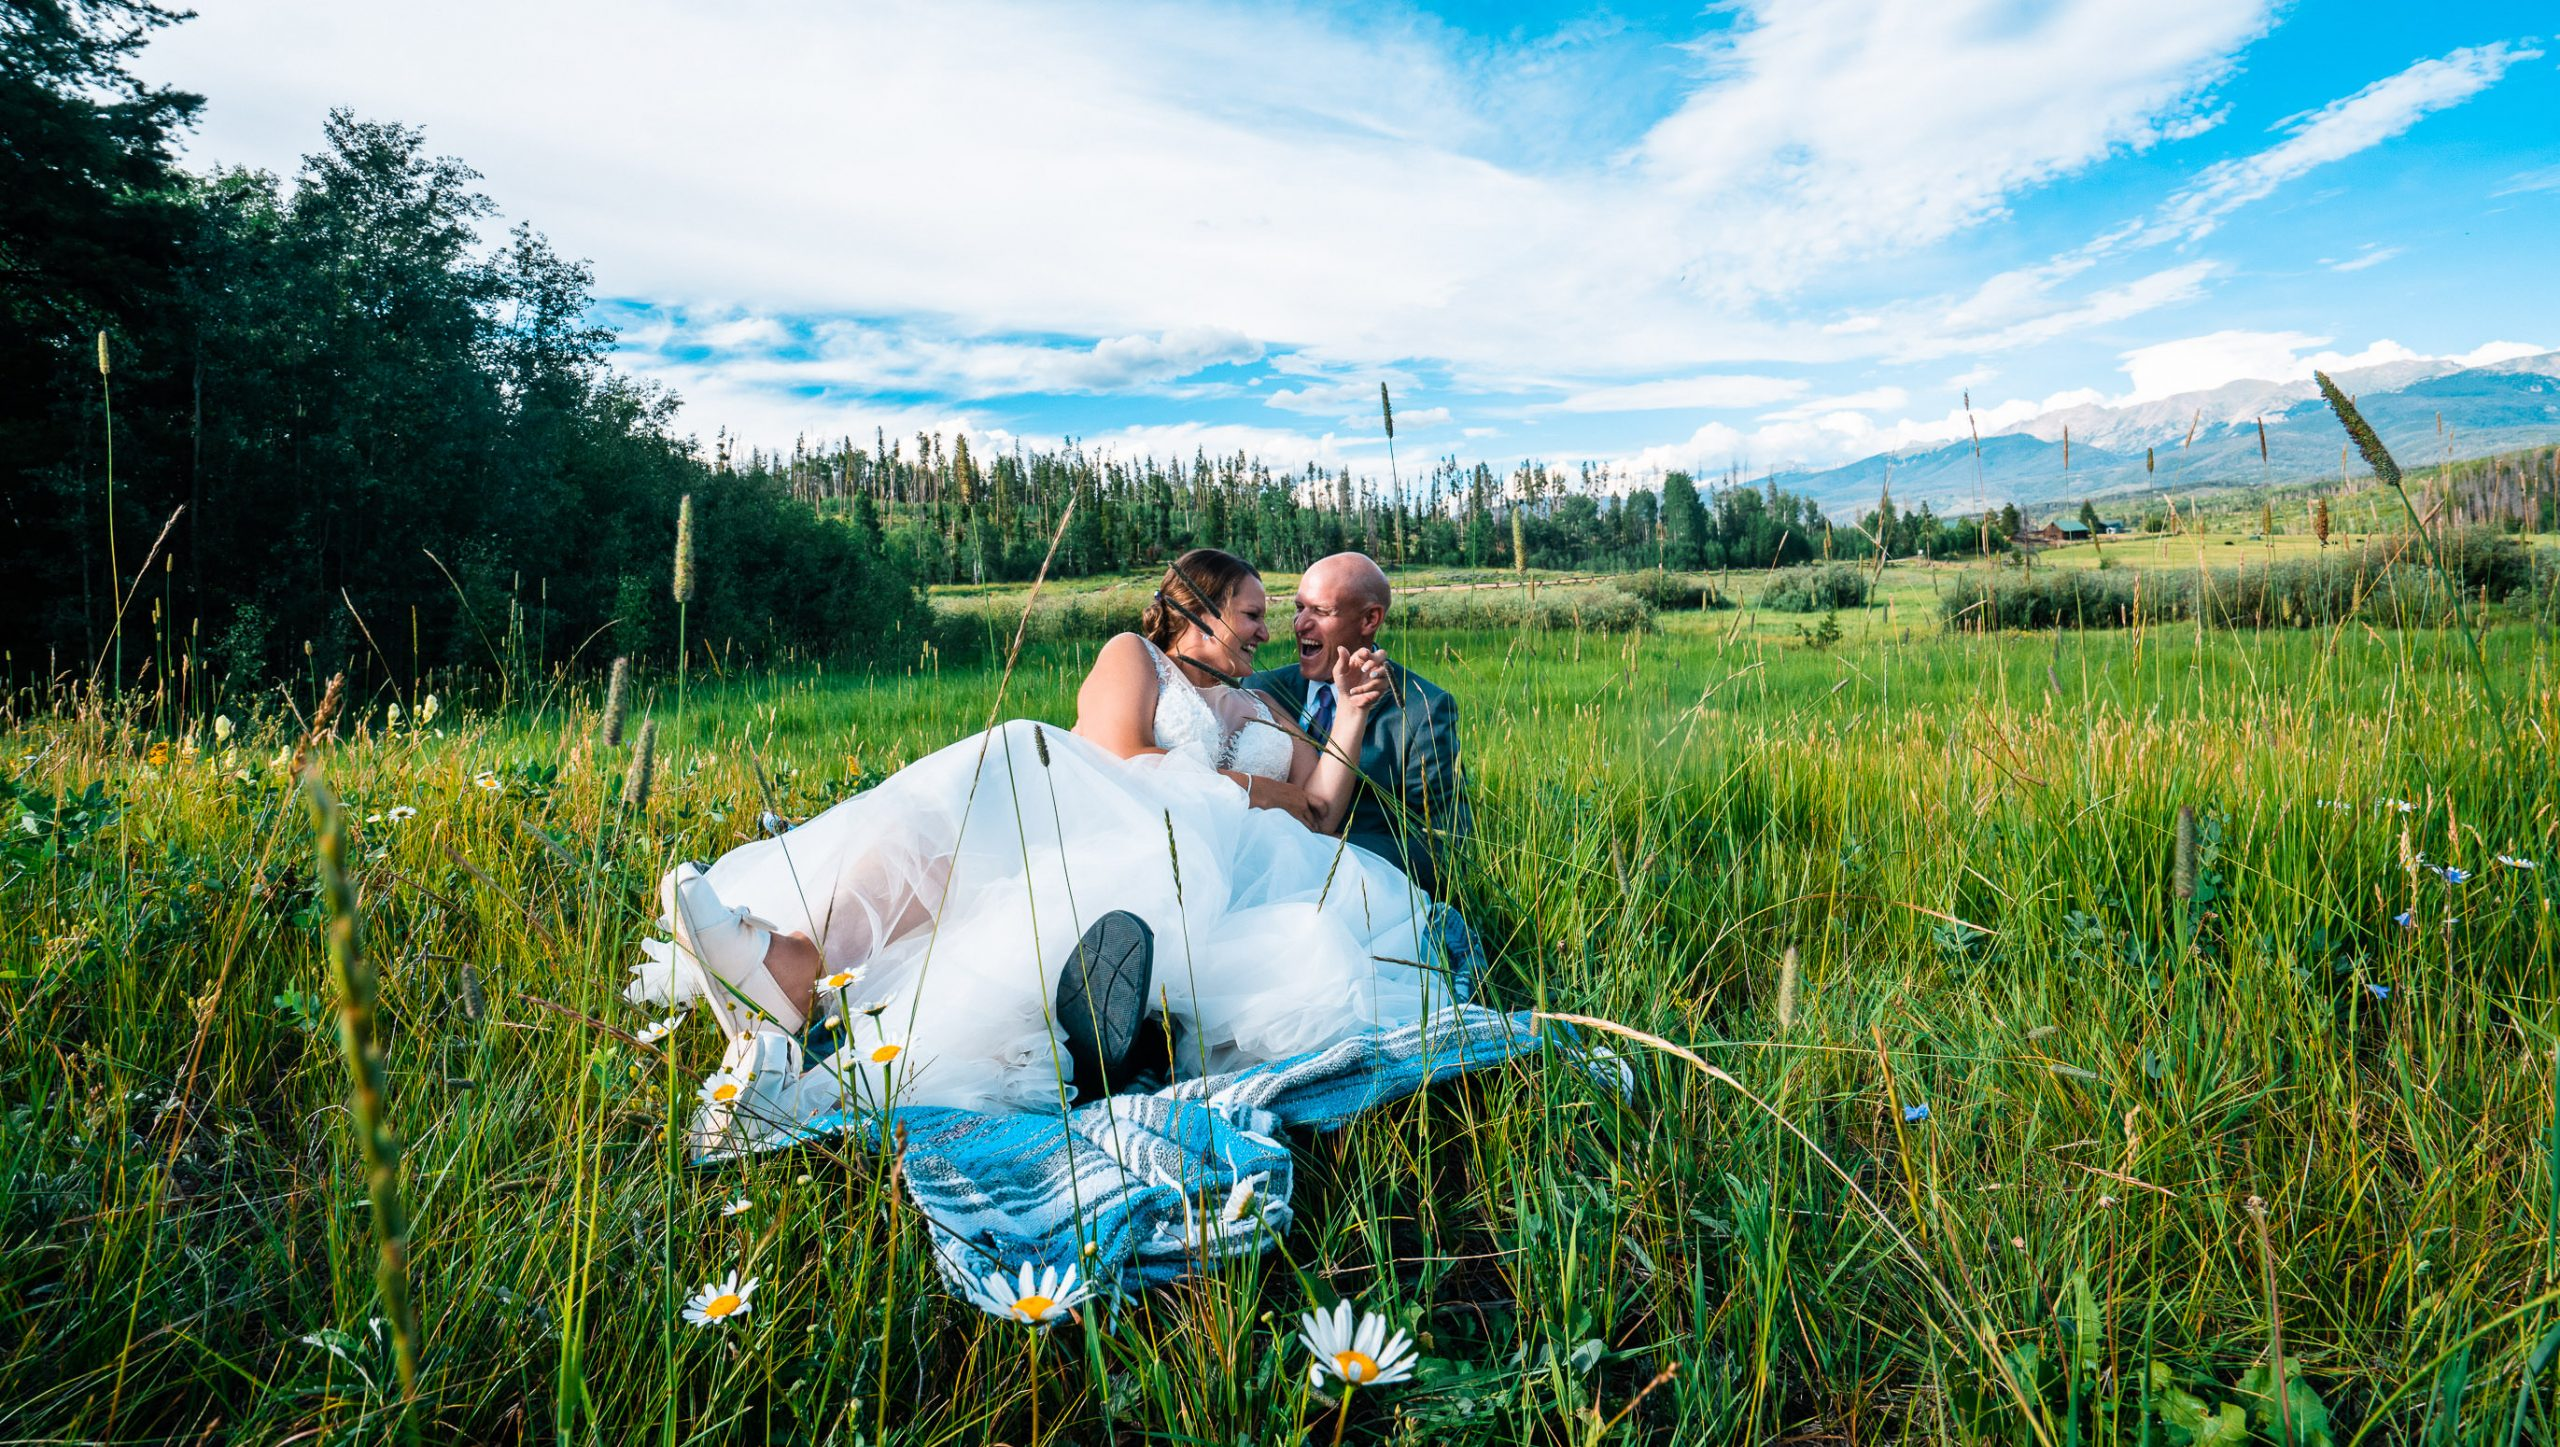 Winter Park Elopement | Run Wild With Me Photography